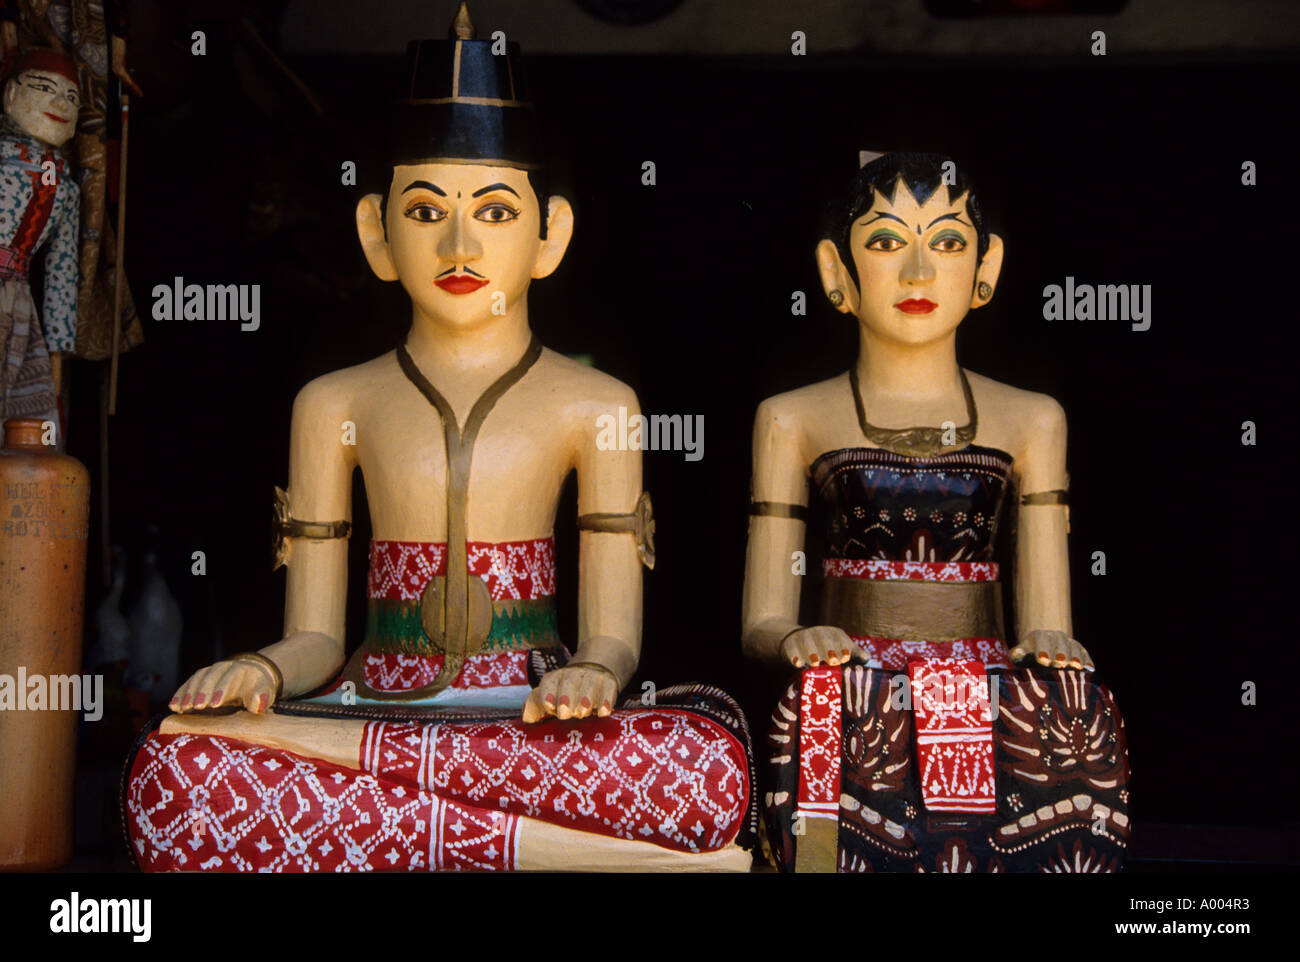 Indonesia Bali Man WomanI ndonesia Indonesian culture Bali Mask Stock Photo: 5620594  Alamy